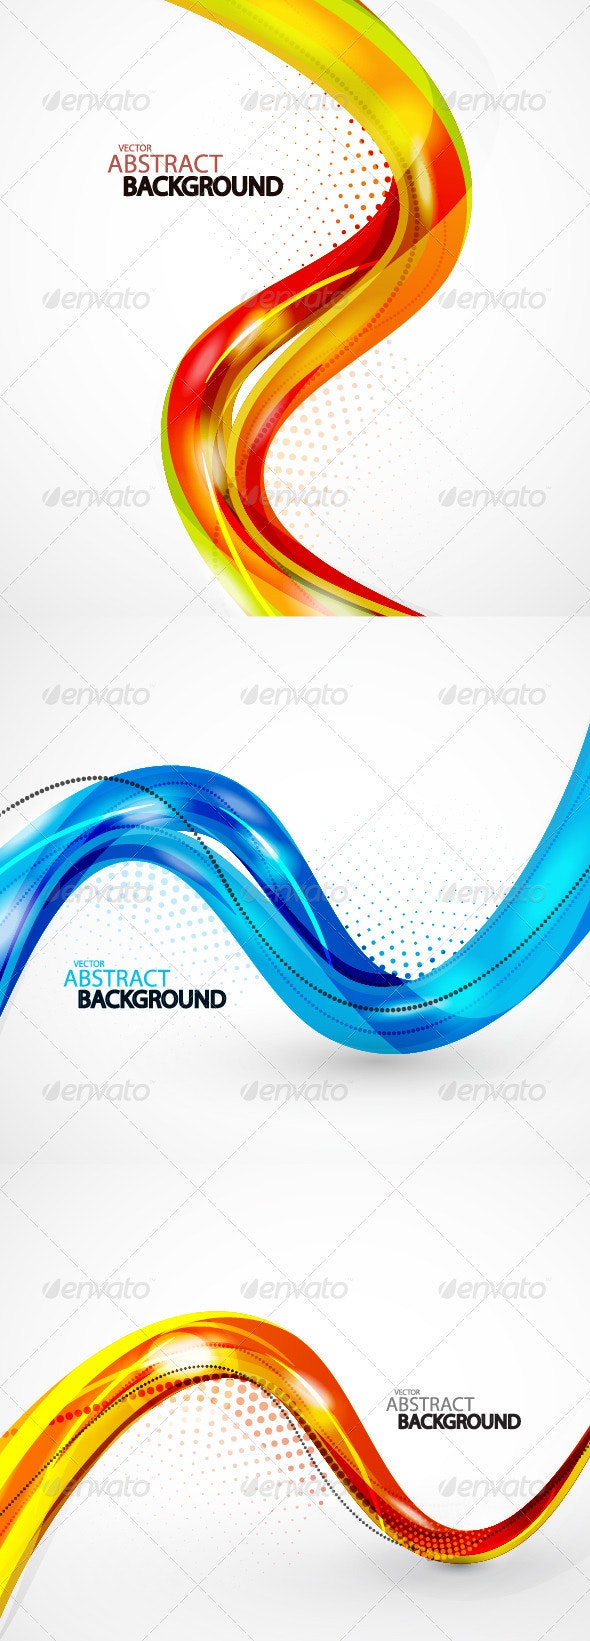 Pack of abstract backgrounds - Abstract Conceptual